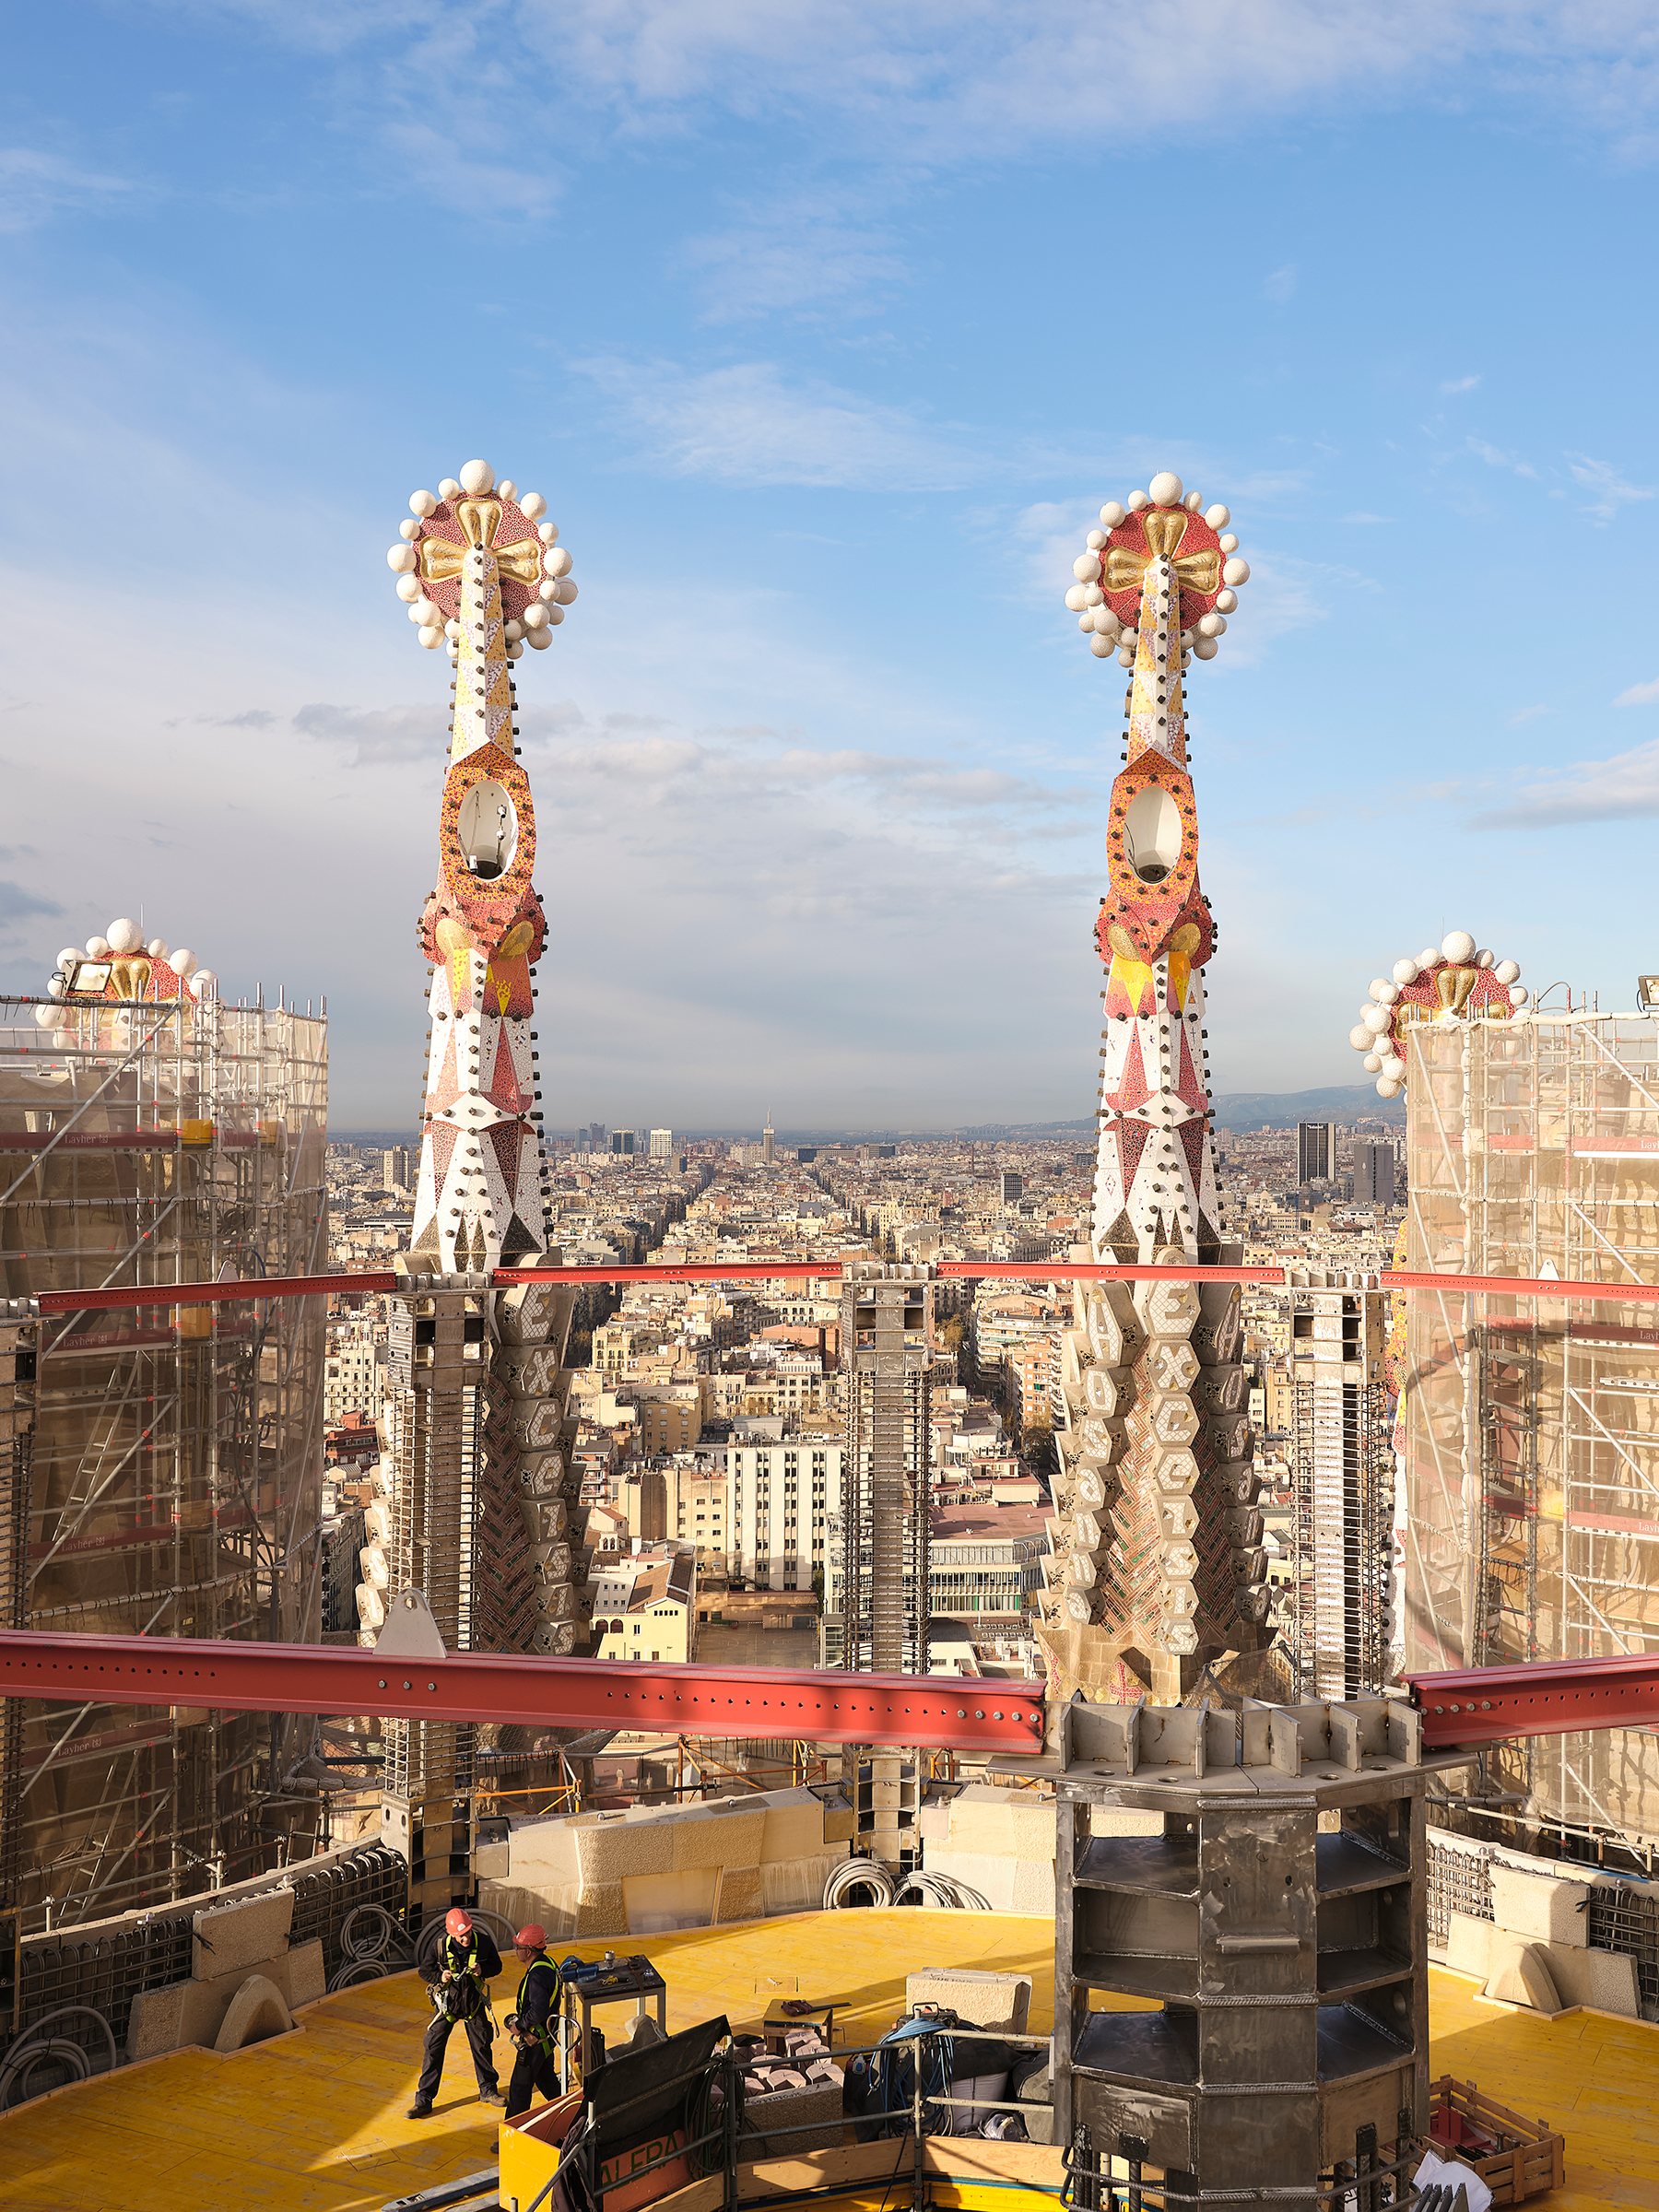 Workers atop the Sagrada Familia, one of the world's longest-running construction projects, in Barcelona in March. July 8 issue.